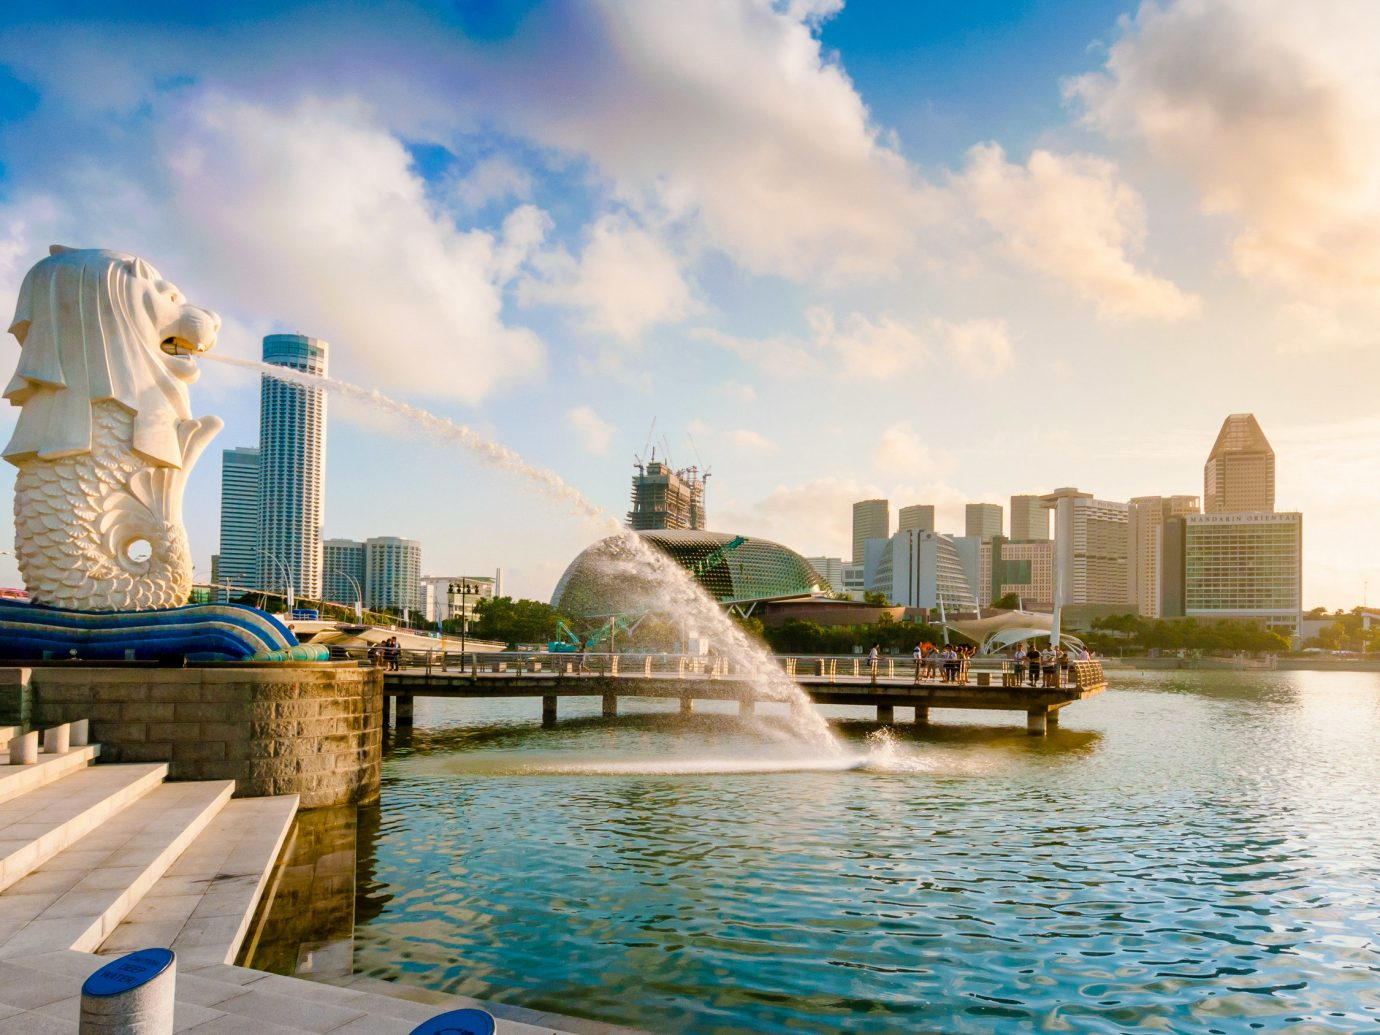 View of Merlion Park in Singapore